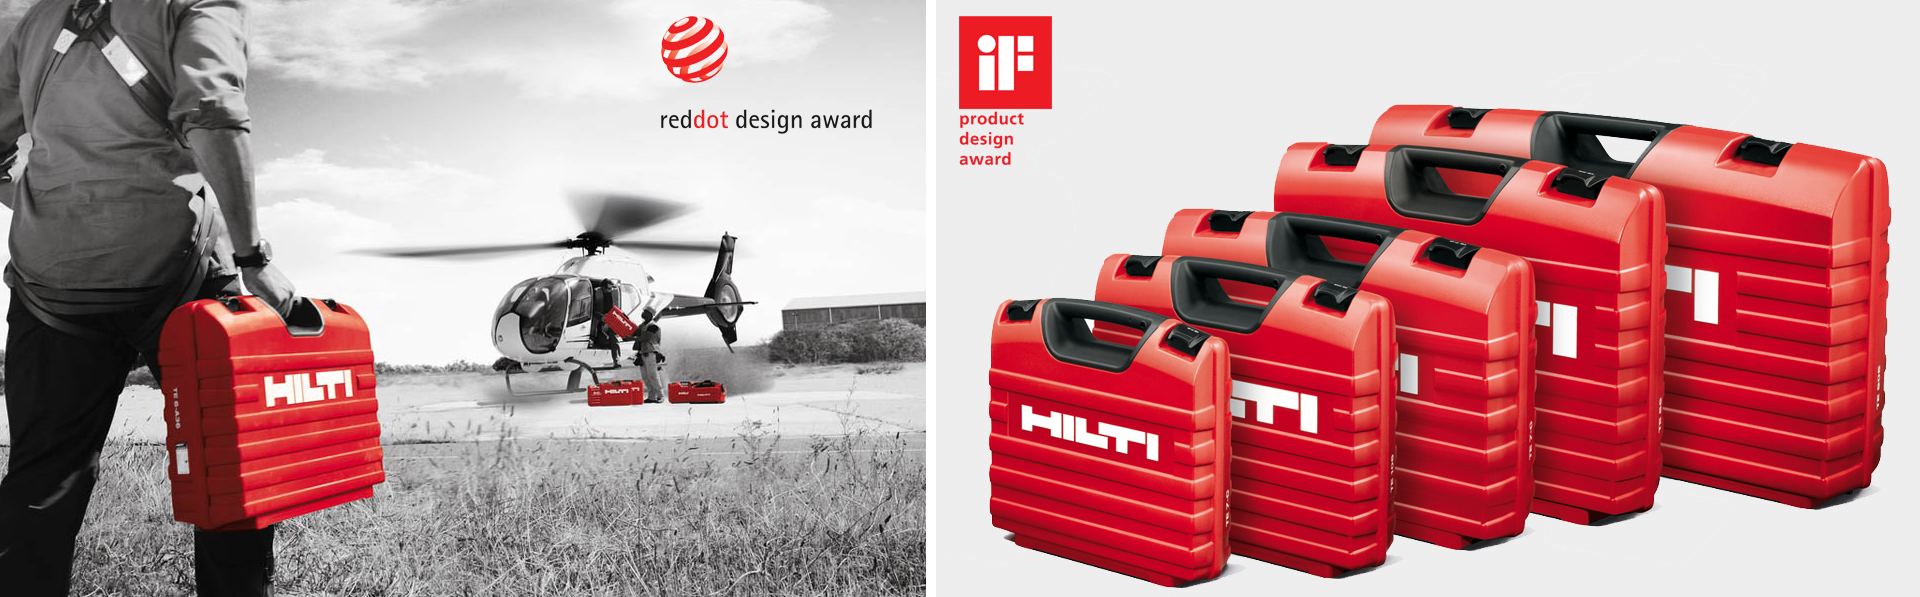 hilti-industrial design-design agency-germany